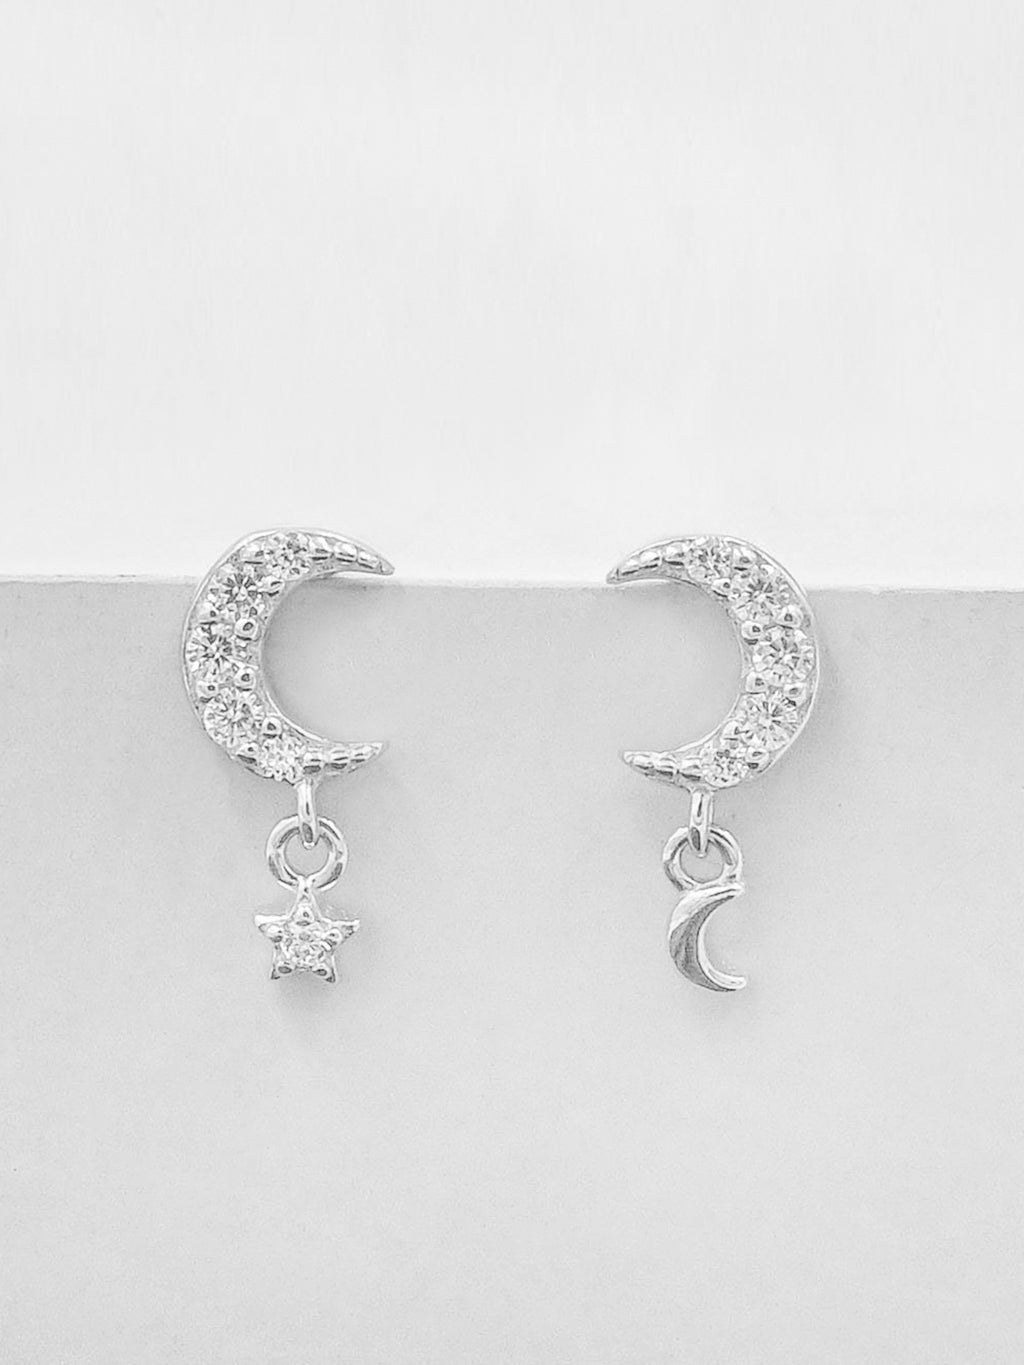 Silver Minimalistic Dangle Moon and Star CZ Dainty Earrings by The Faint hearted Jewelry